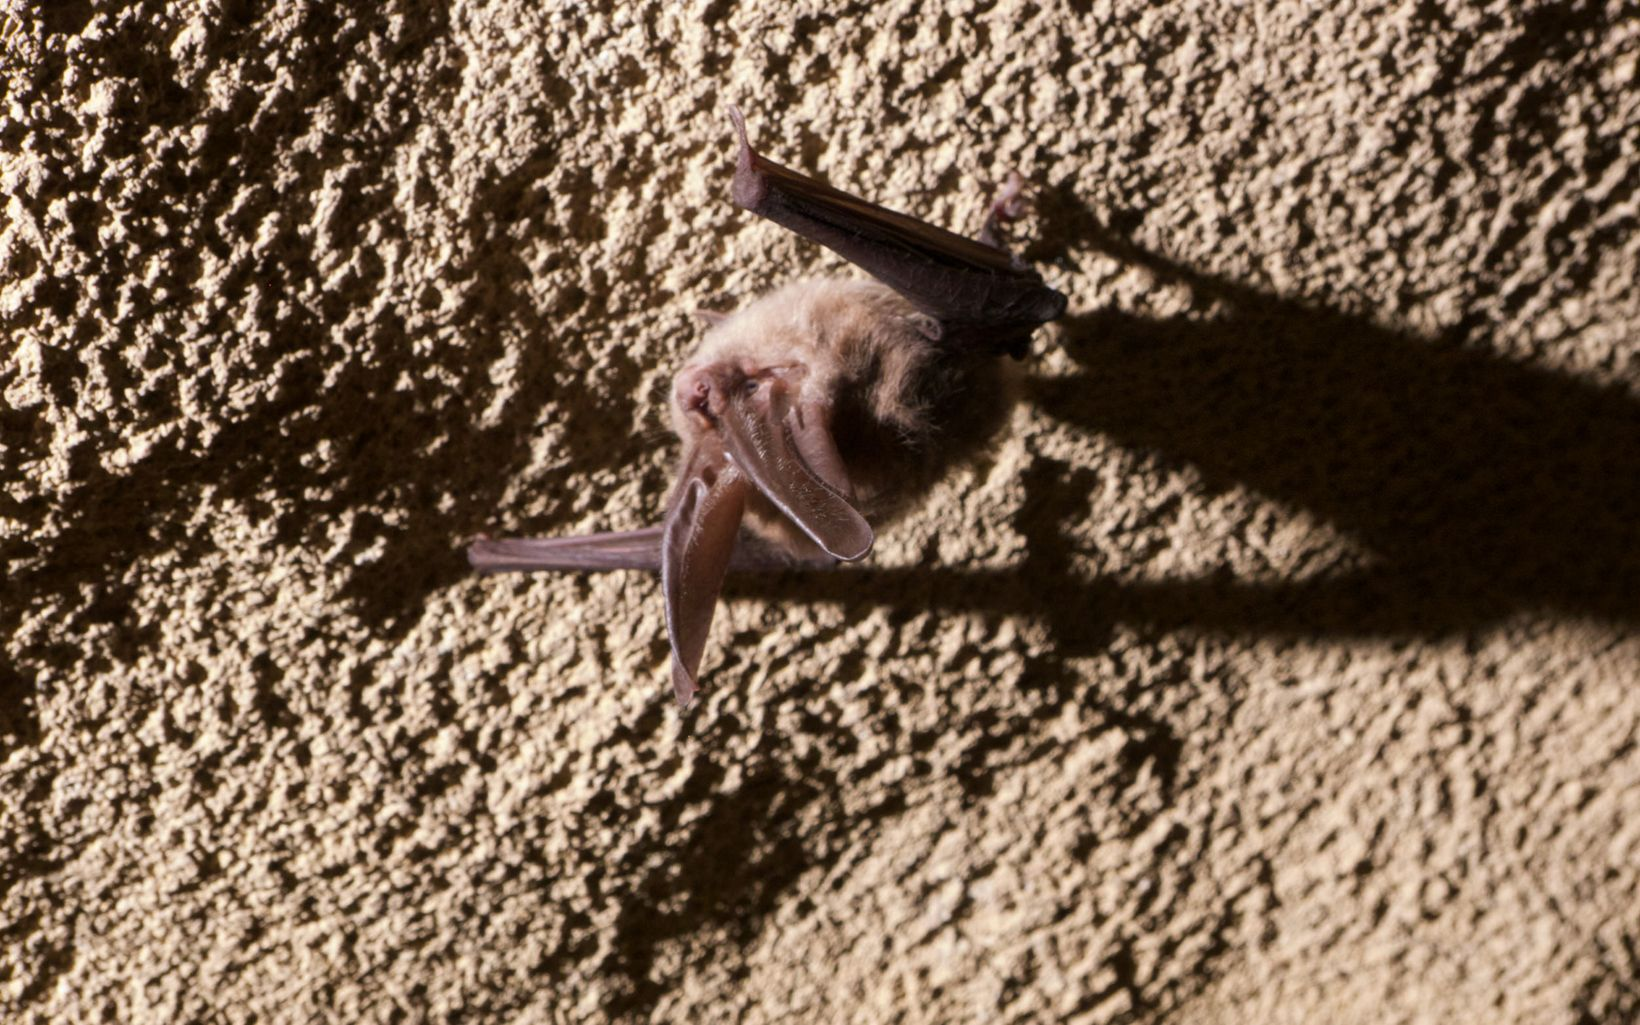 Virginia Big-Eared Bat